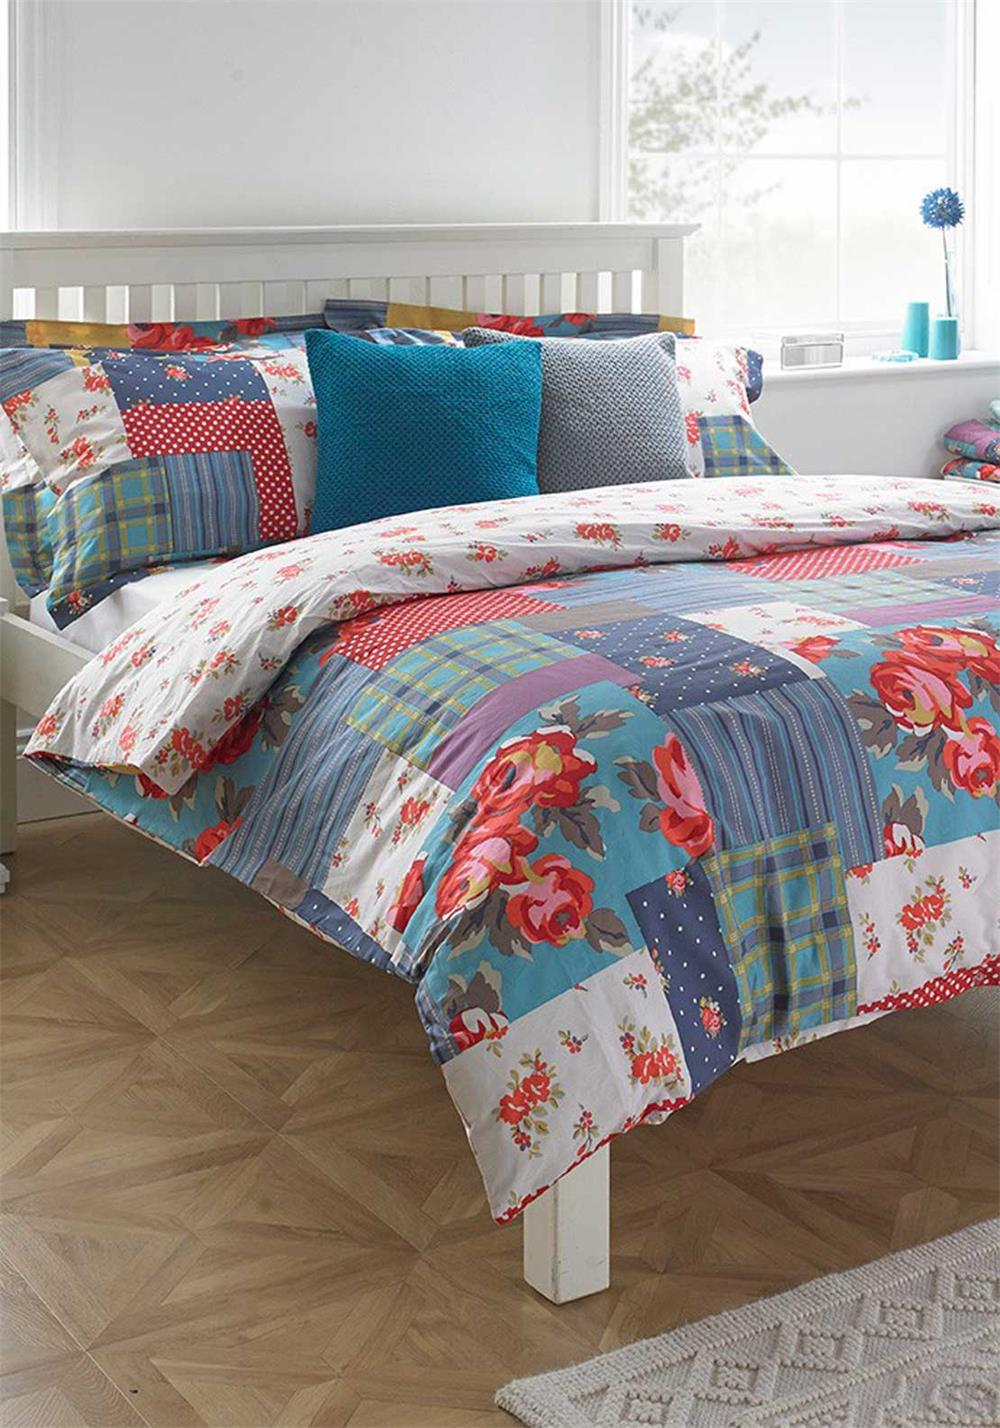 Paoletti Patchwork Duvet Cover Set, Multi-Coloured